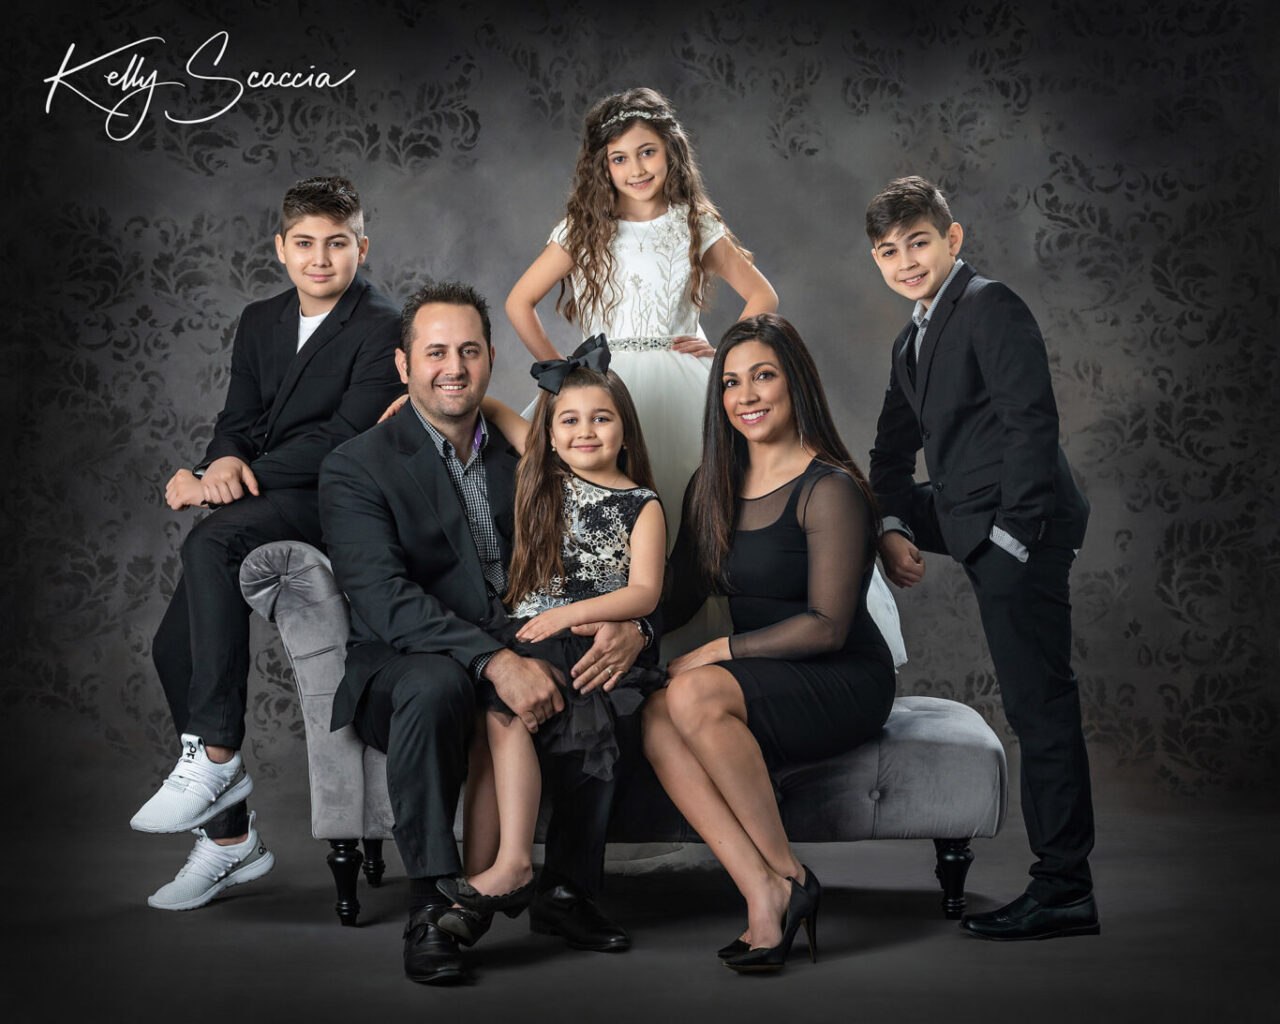 Formal family studio portrait of six in black and white clothing sitting on a couch